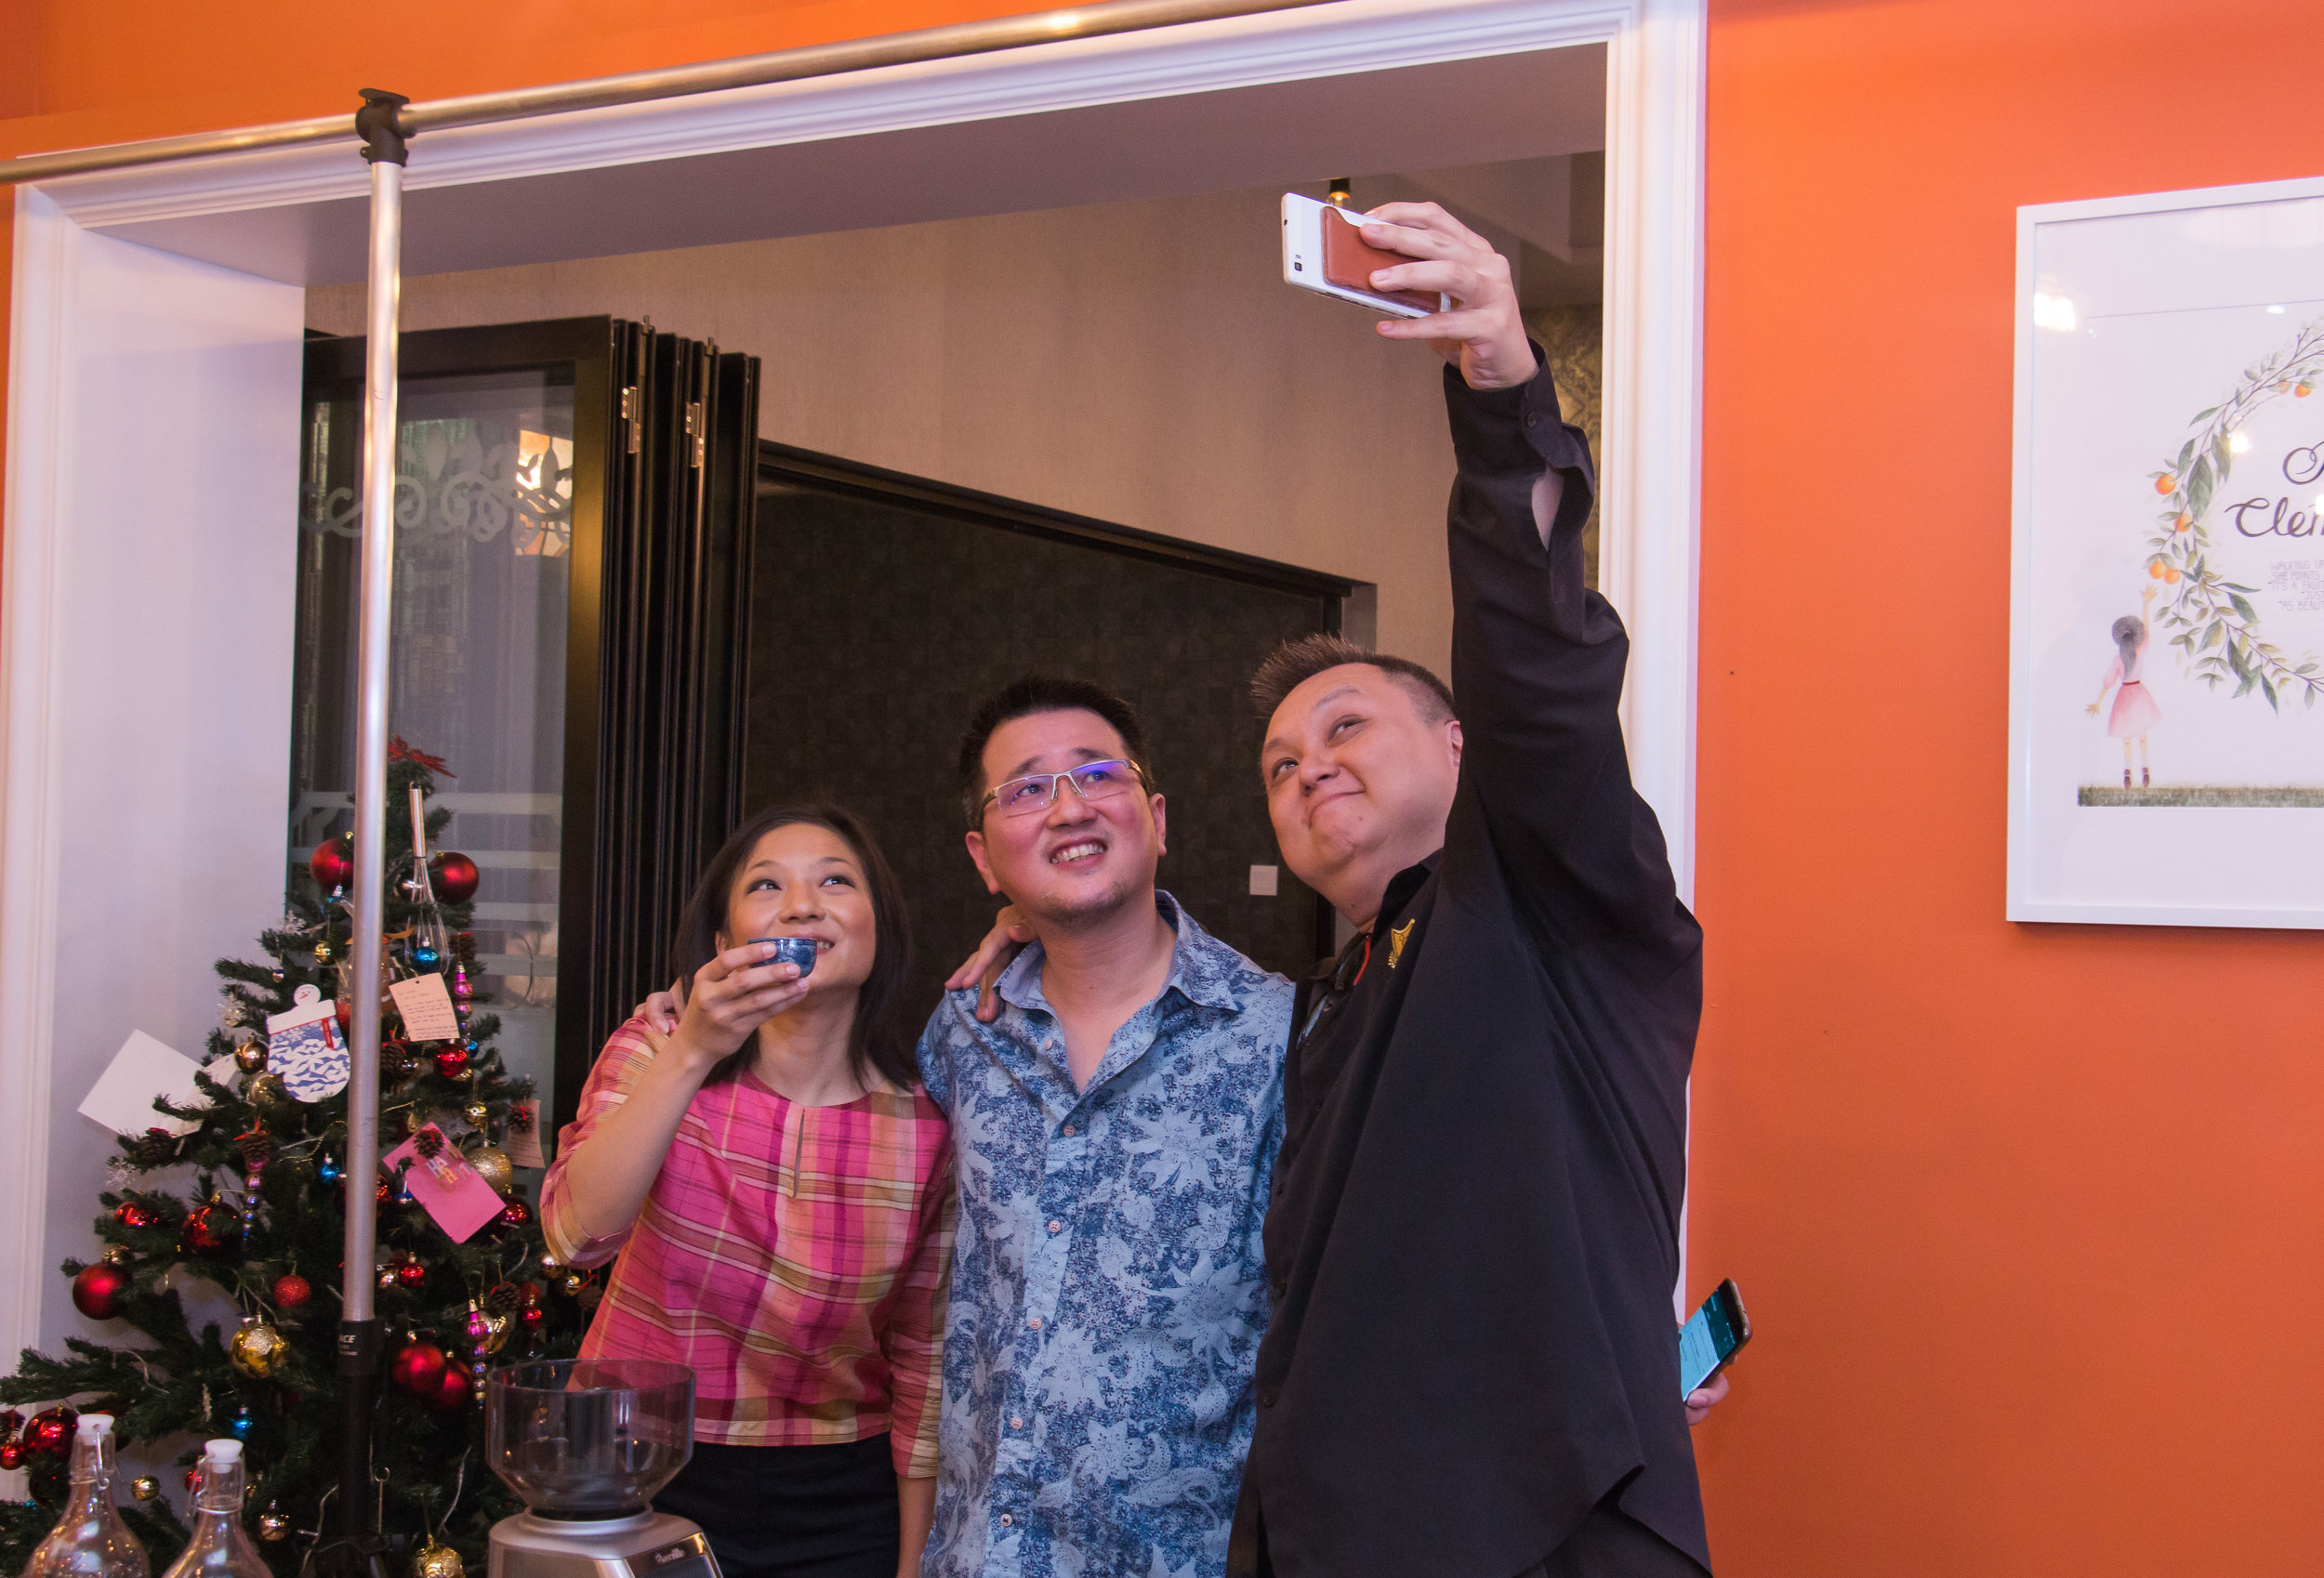 Vickey, PA, and Daniel Liew at the opening of Red Clementine.